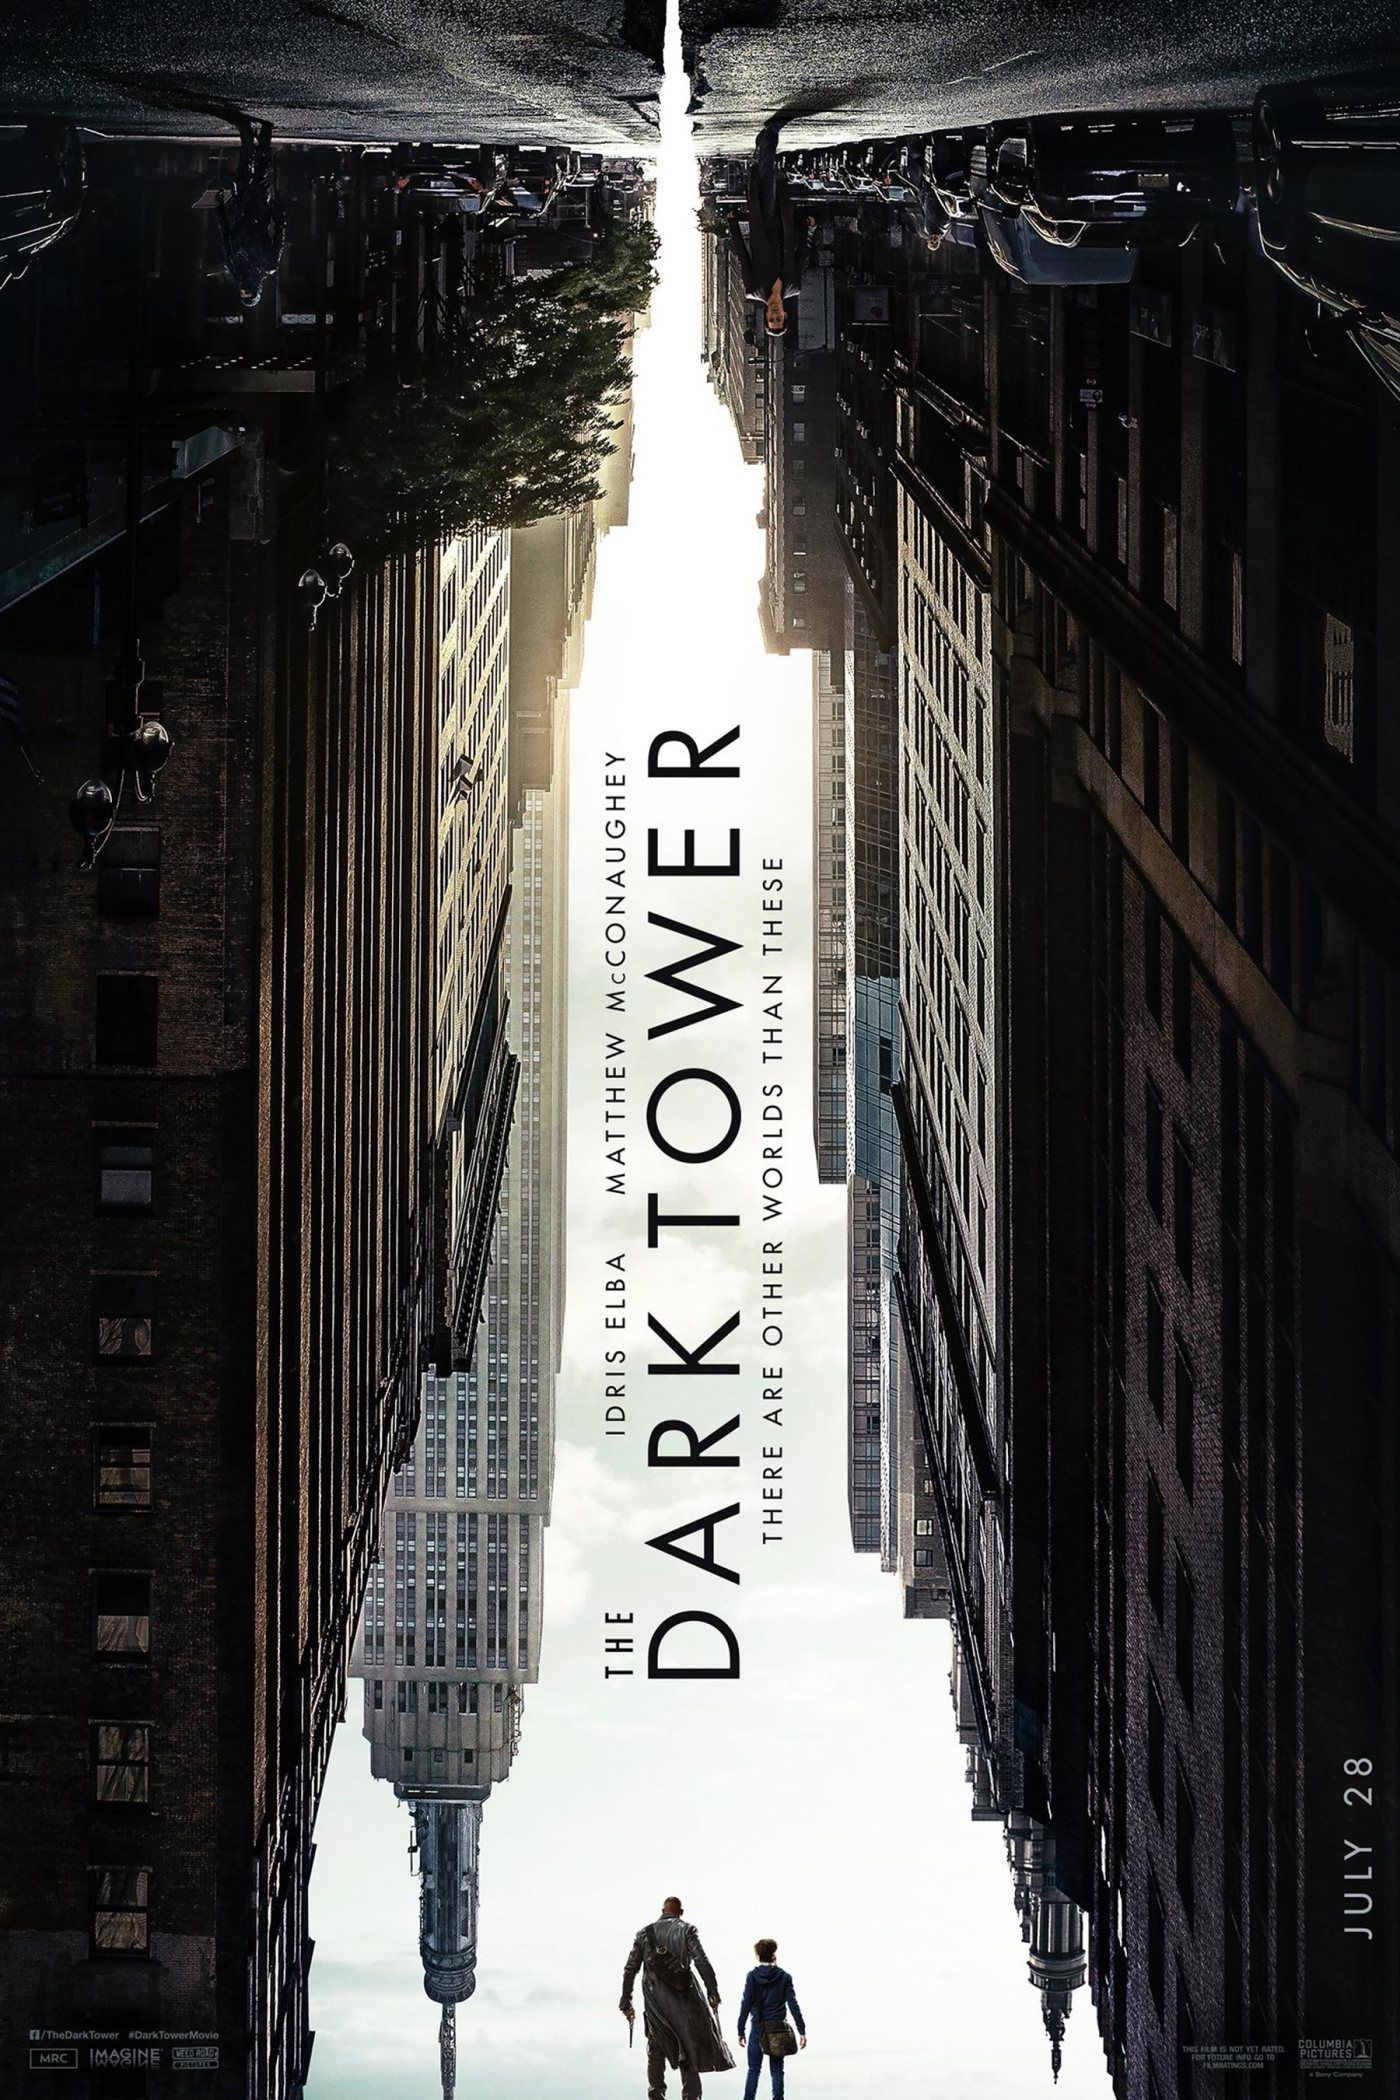 The Dark Tower by Stephen King. An amazing poster concept that would make for a brilliant book cover.